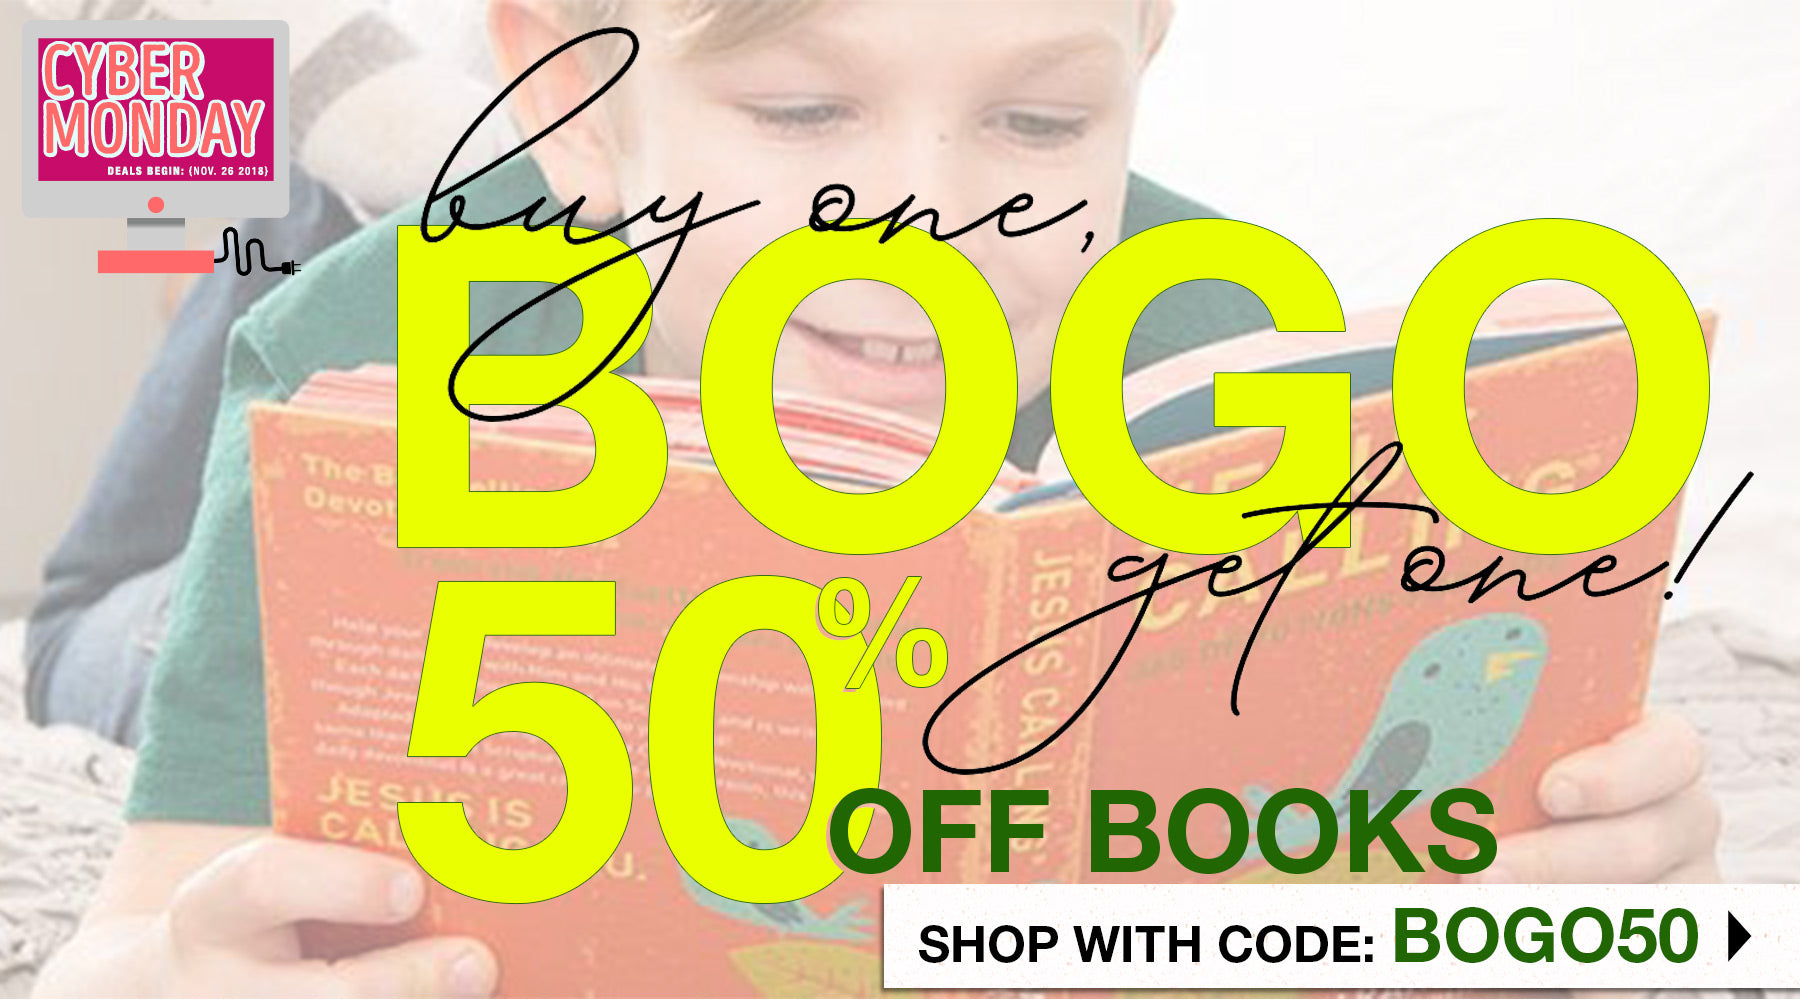 BOGO: Buy One, Get One 50% off Books